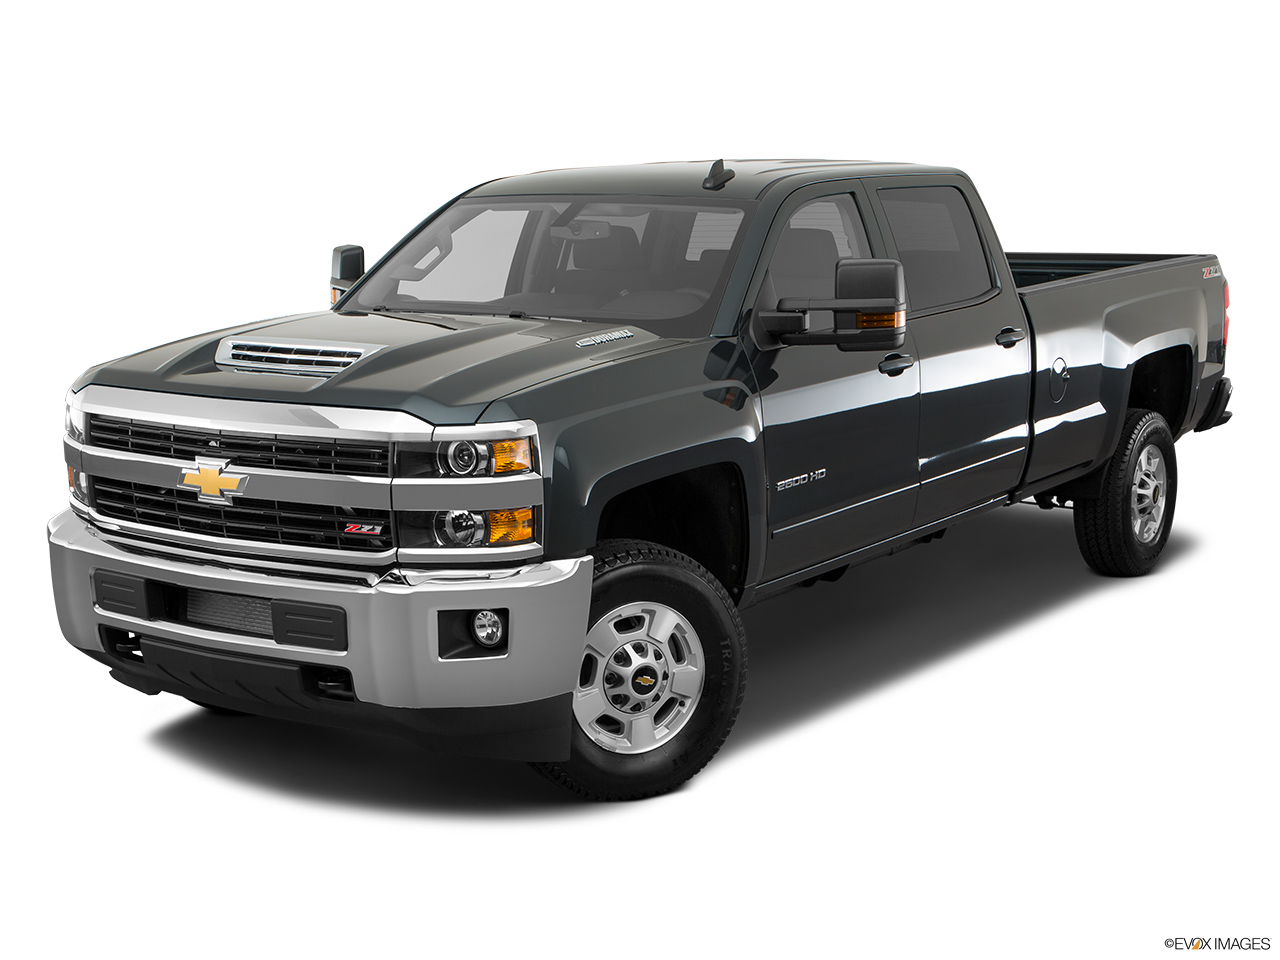 chevrolet silverado midnight edition 2017 2500 in oman new car prices specs reviews photos. Black Bedroom Furniture Sets. Home Design Ideas